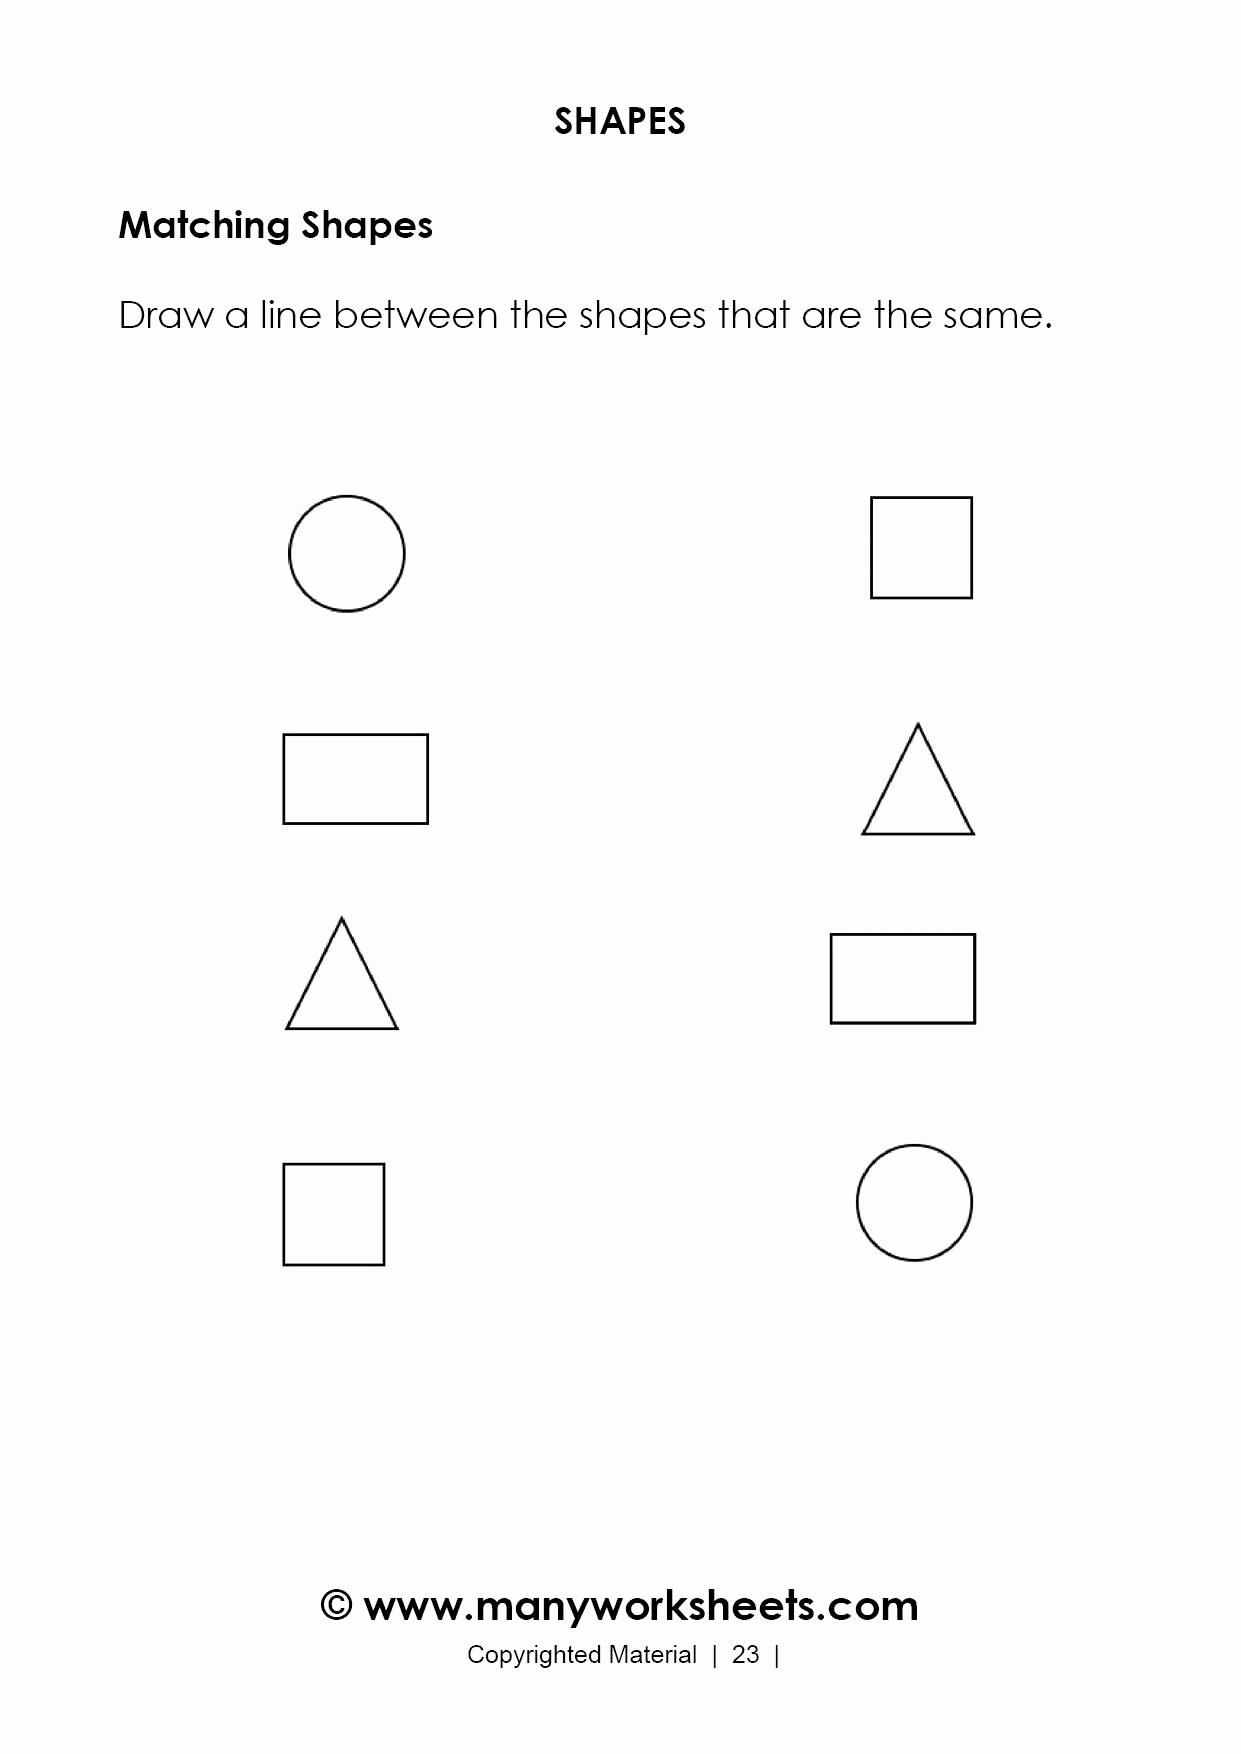 Shape Matching Worksheets for Preschoolers Inspirational Matching Shapes Worksheets for Kindergarten